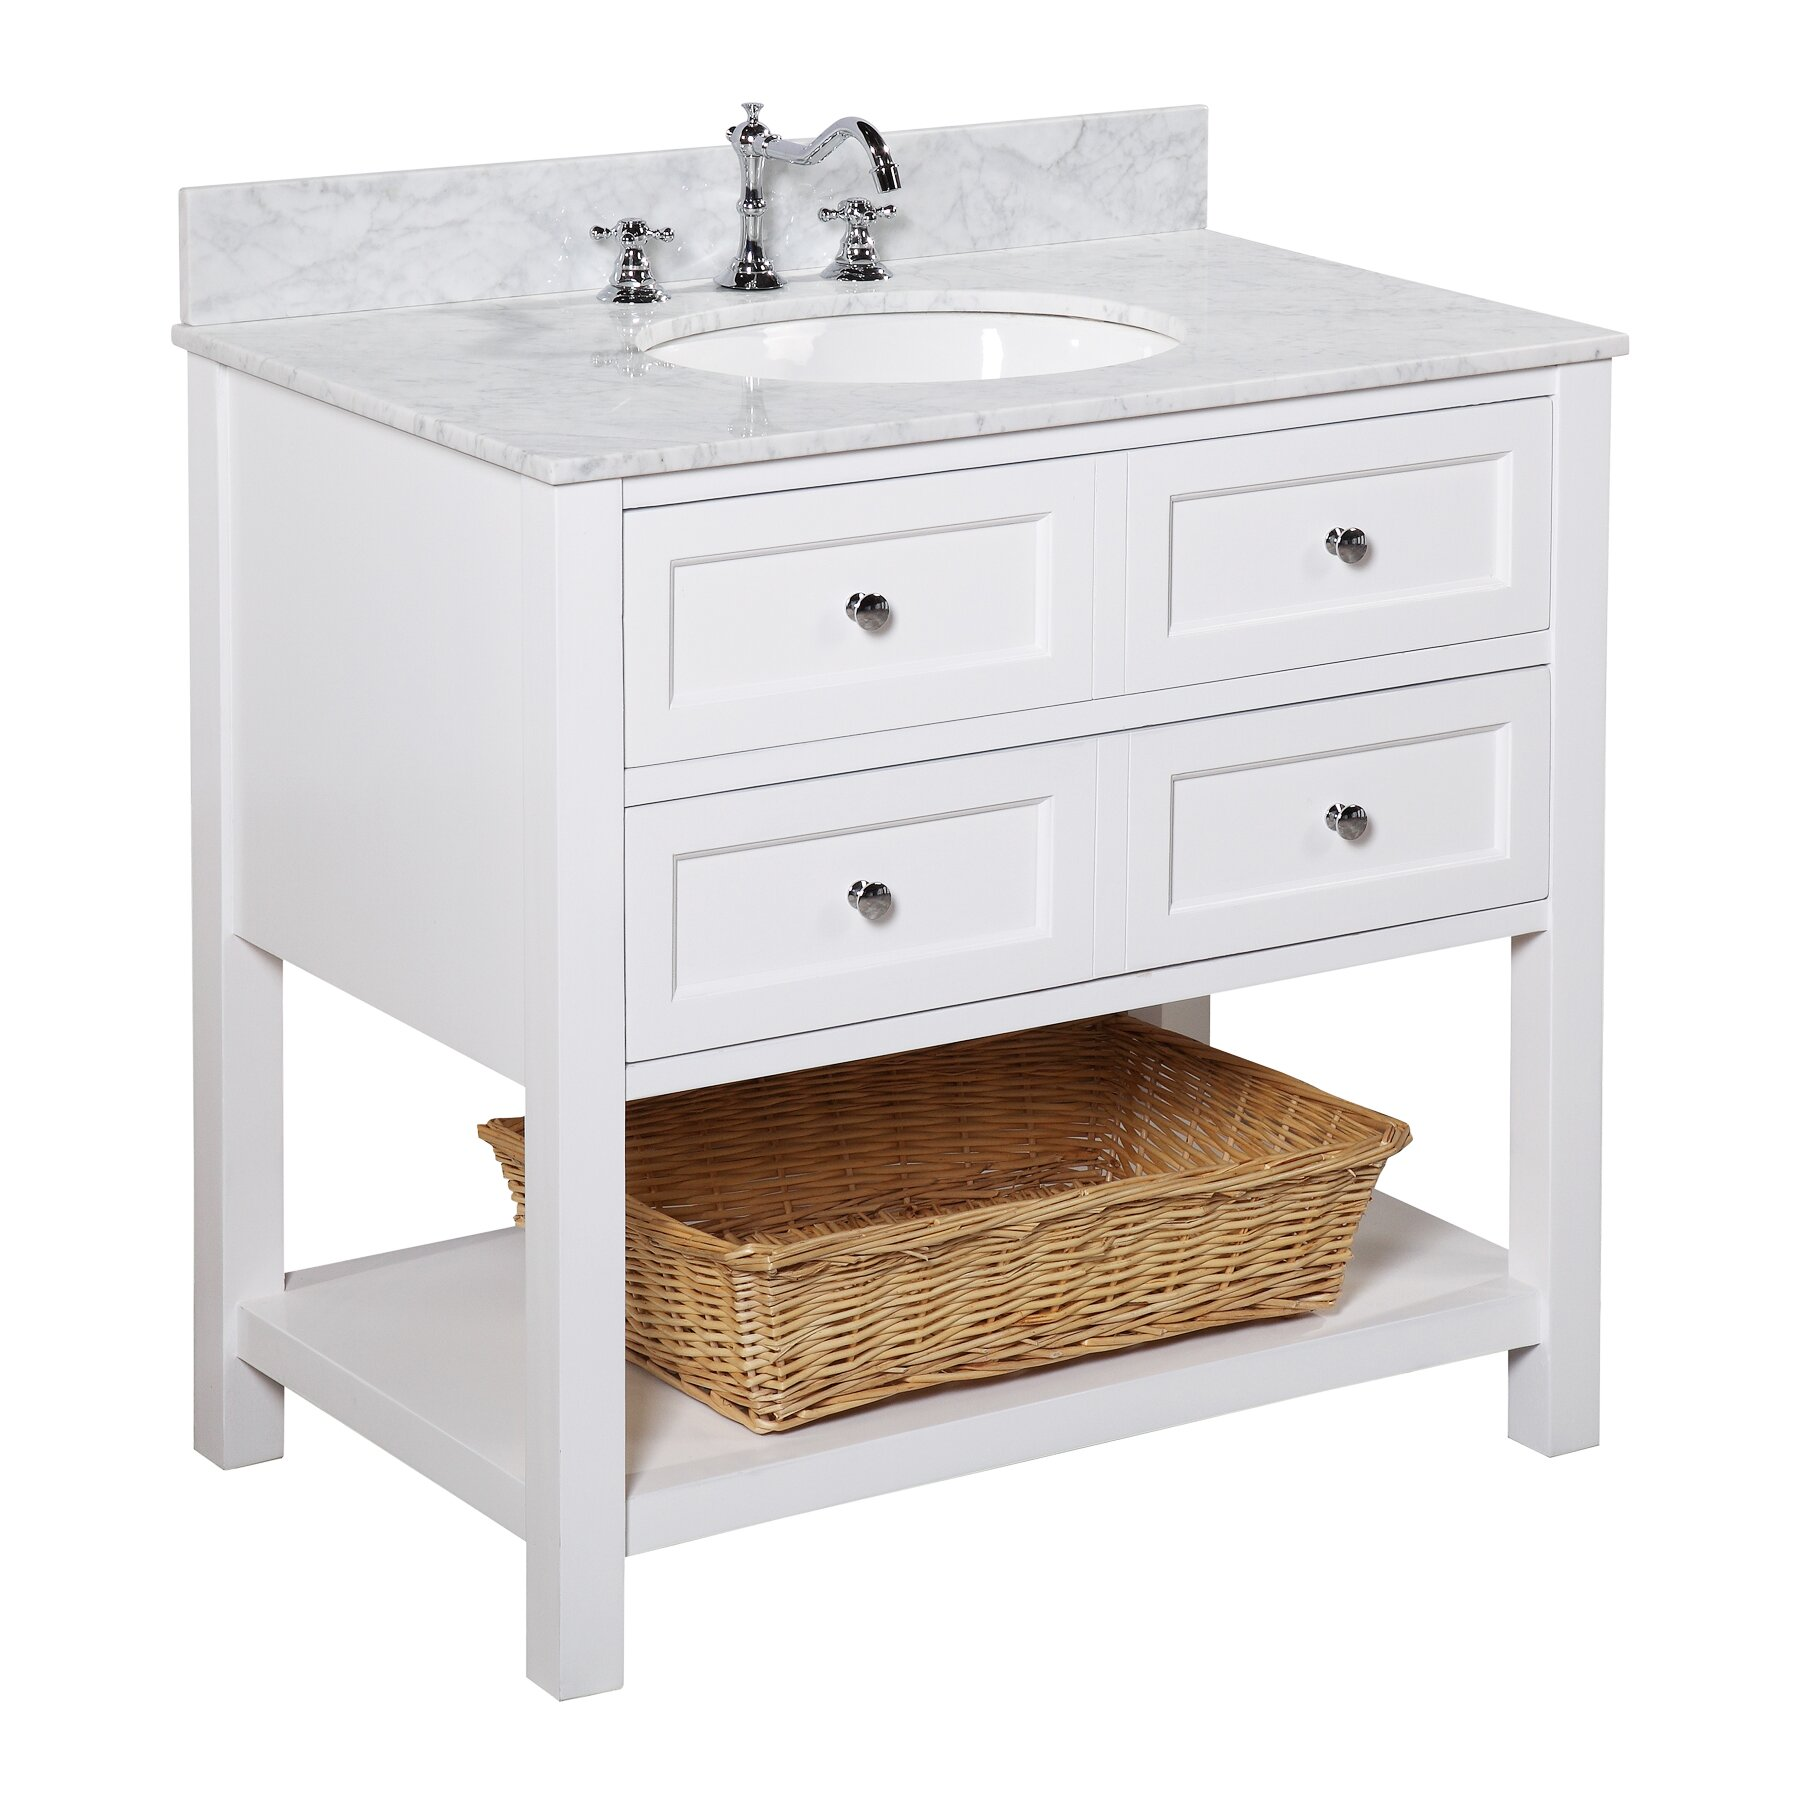 kbc new yorker 36 quot single bathroom vanity set amp reviews